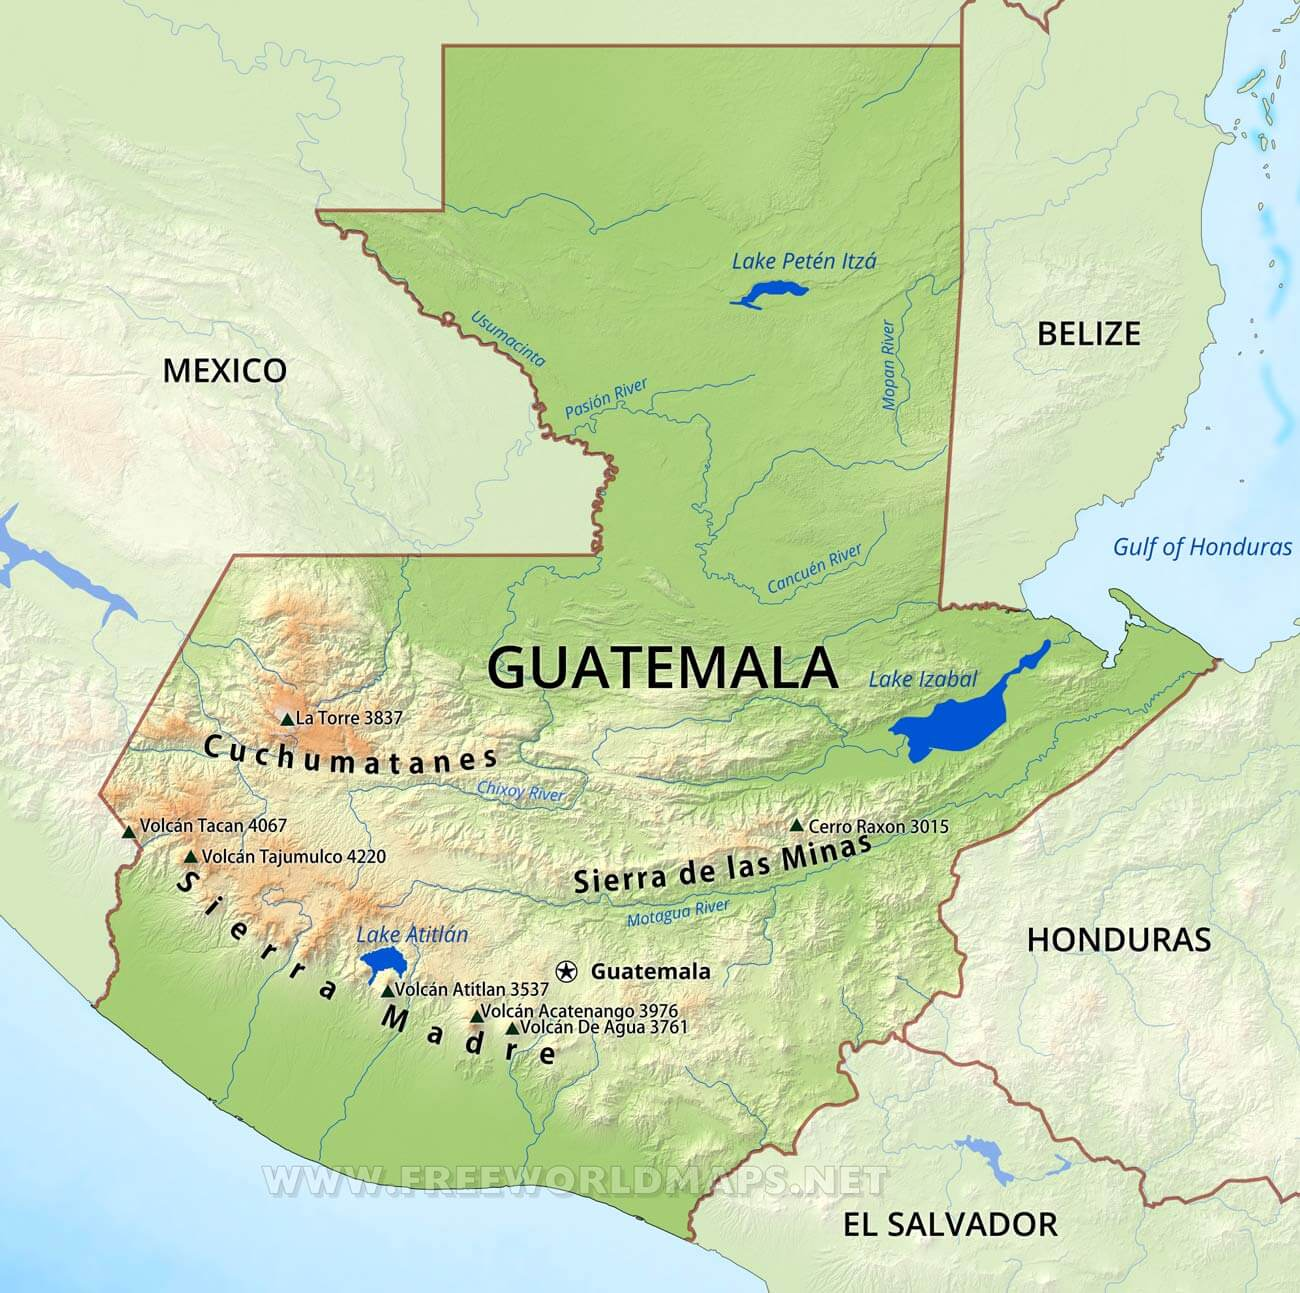 Guatemala Physical Map on panama map, costa rica, spain map, guyana map, central america, middle east map, ambergris caye map, california map, cuba map, guatemala city, dominican republic, russia map, peru map, puert rico map, antigua guatemala, mexico map, latin america, china map, haiti map, caribbean map, luxembourg map, puerto rico map, el salvador, united states map, dominican republic map, jamaica map, world map,